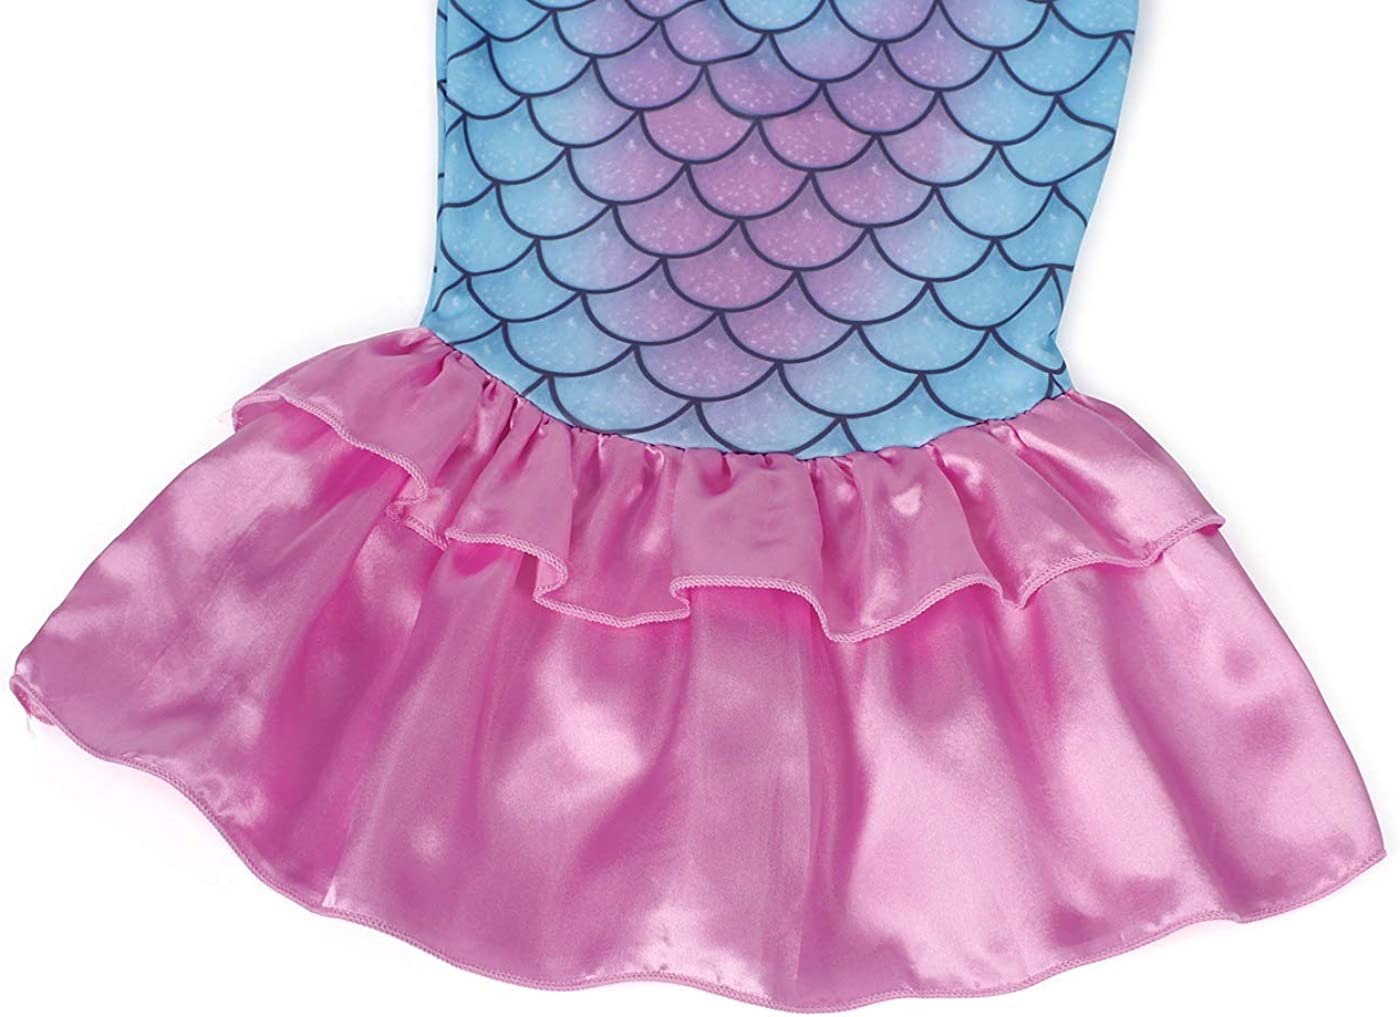 Jurebecia Vestito Sirena Bambina Ragazze Sirena Costume da Principessa Dress Up Party Fancy Birthday Halloween Kids Abiti con Accessori